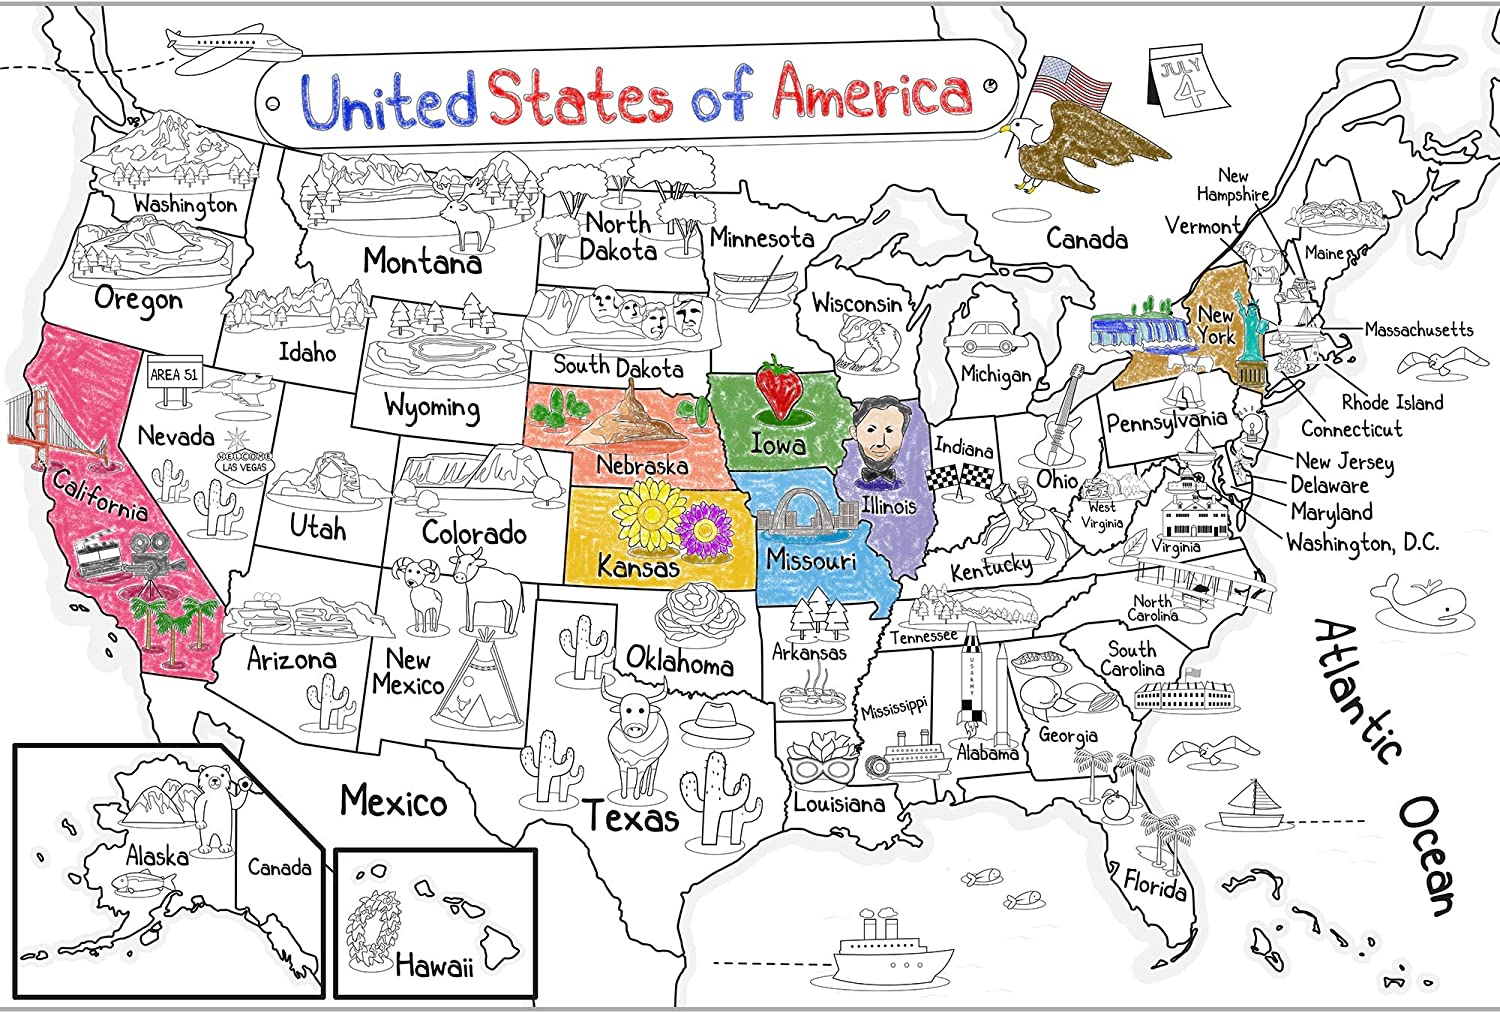 Us Map Coloring Tool Amazon.com: Dekali Designs US Map Coloring Poster   52x35 Inches